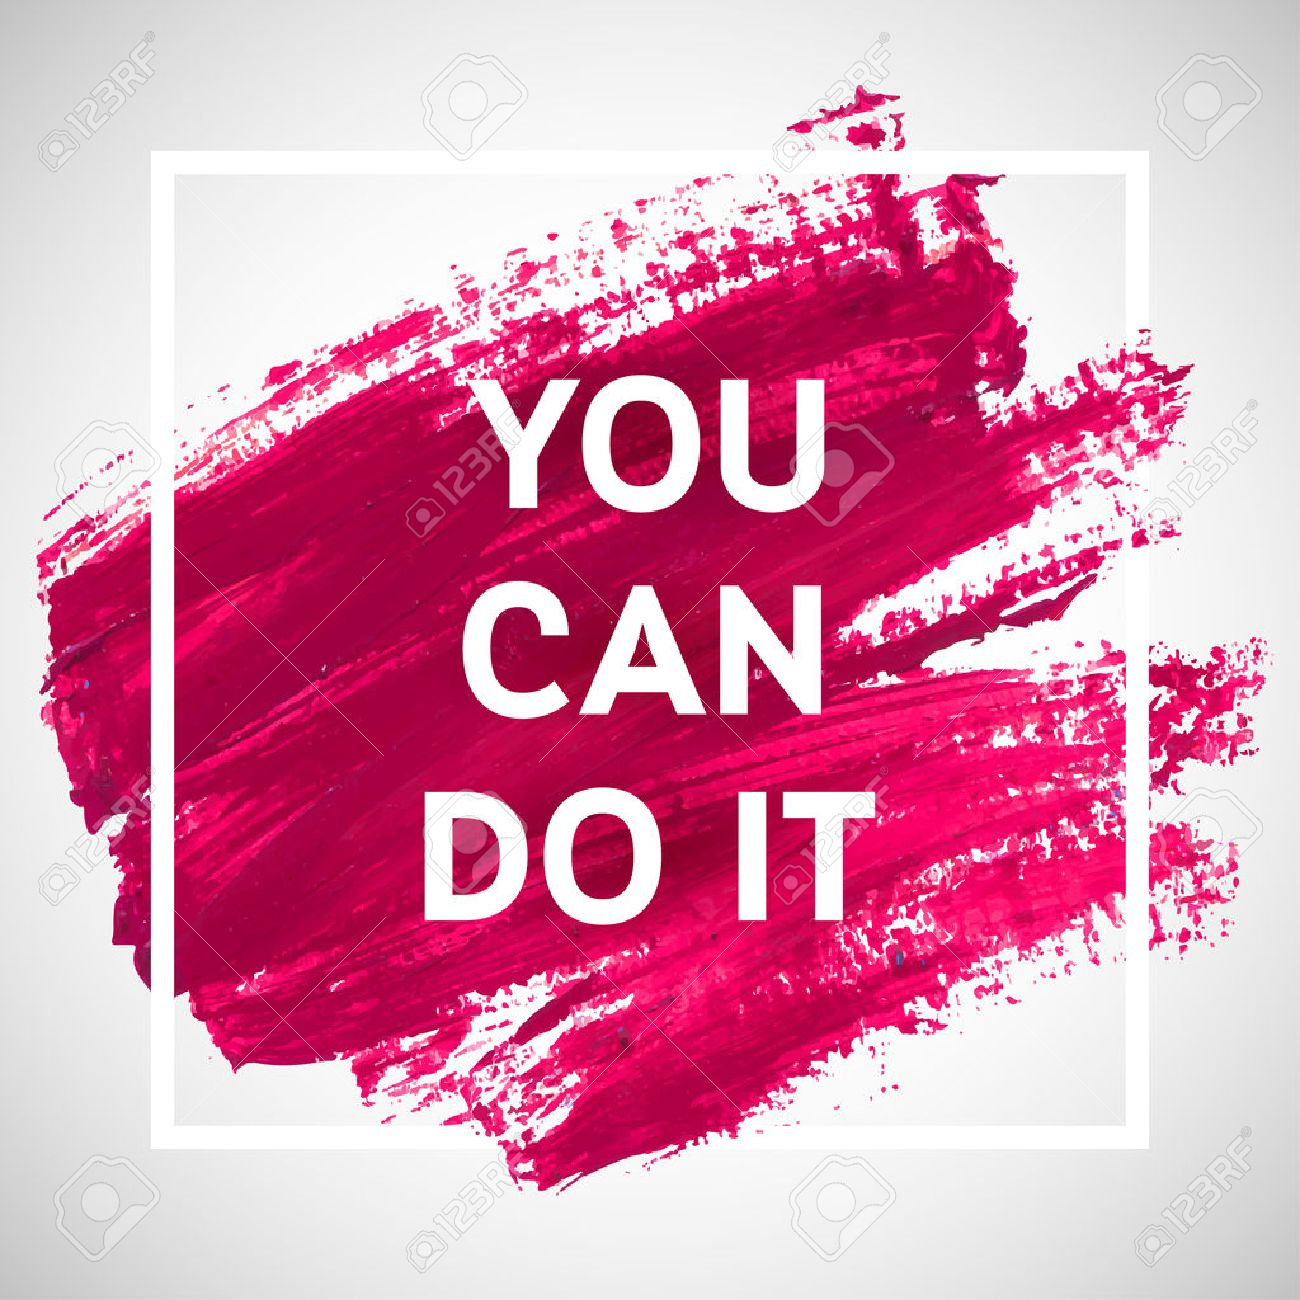 You Can Do It Motivation Square Acrylic Stroke Poster Text